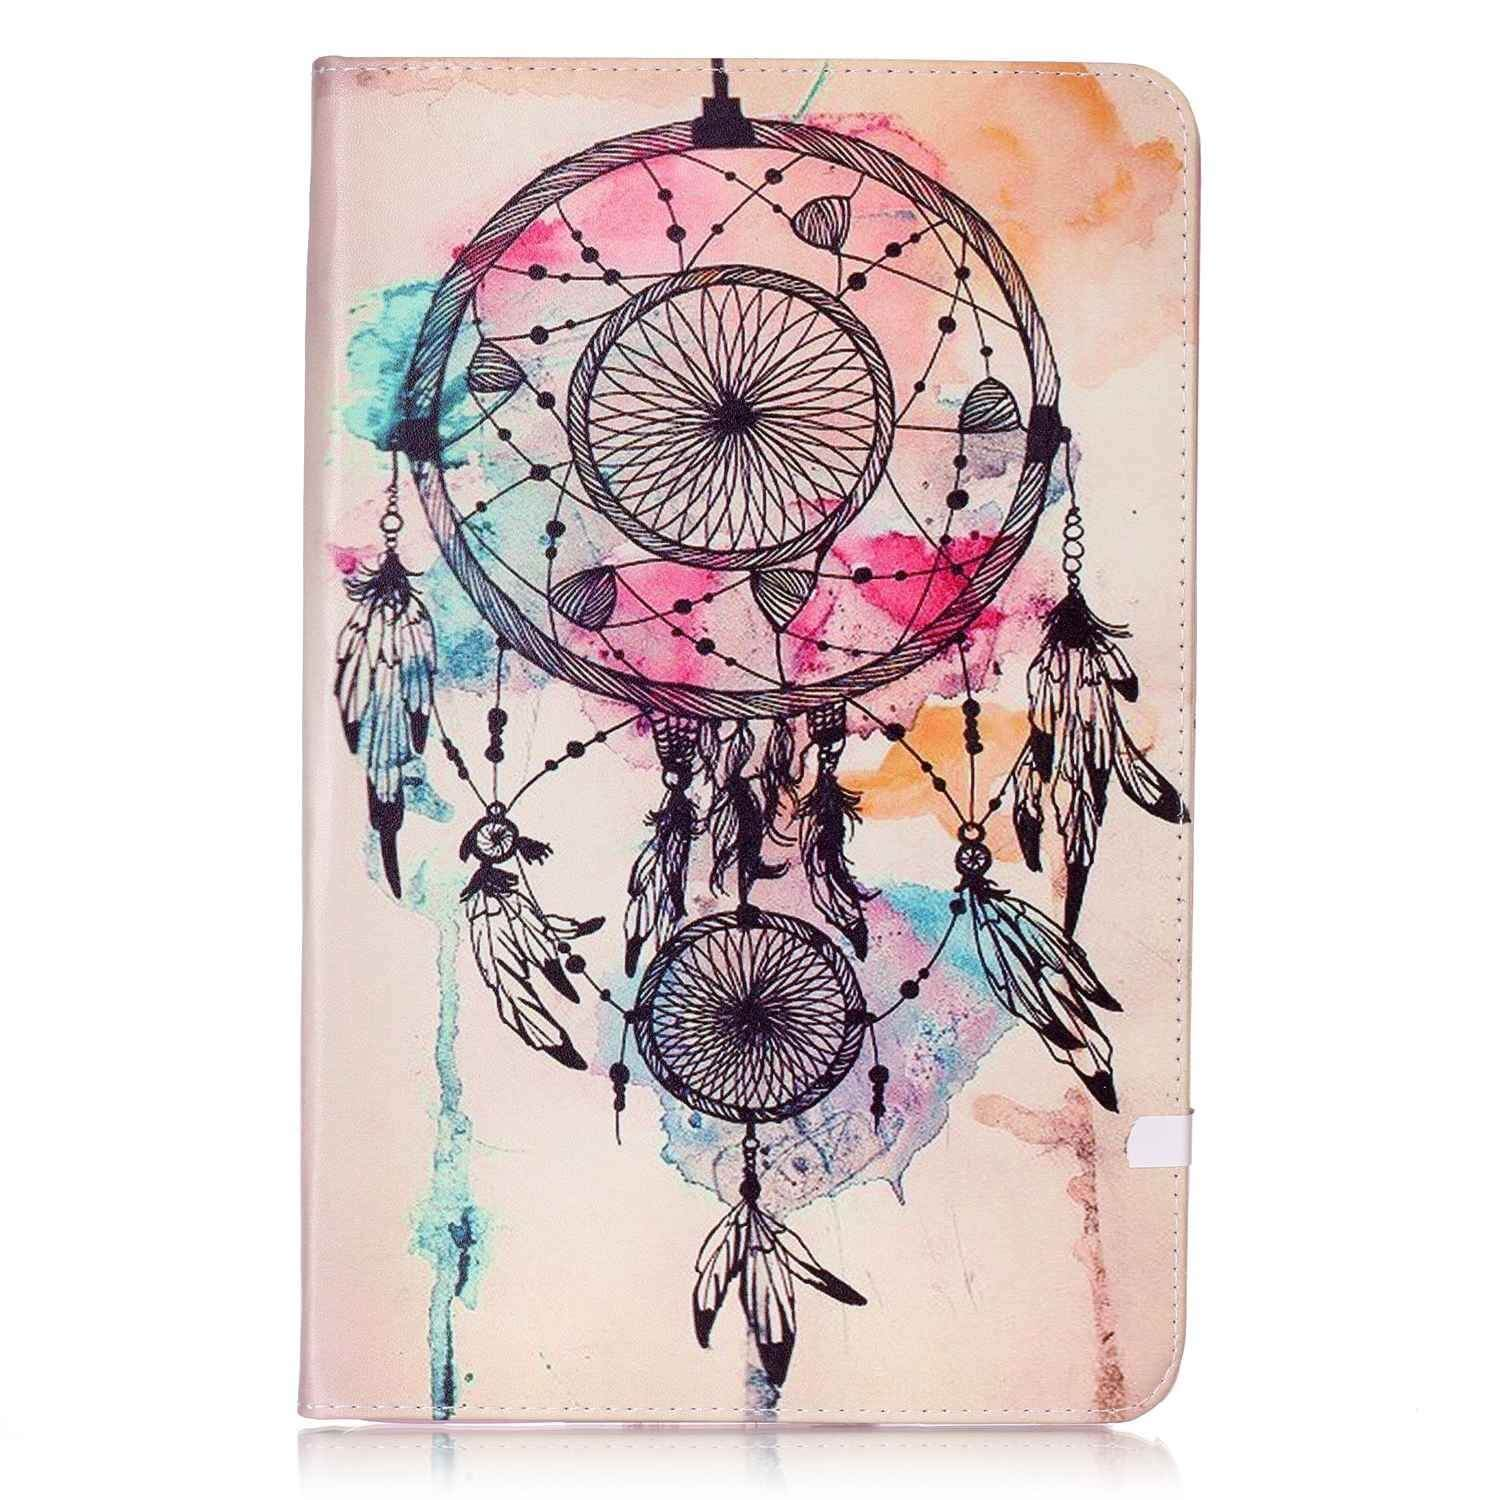 galaxy tab a 10 1 s pen 2016 case with a wide selection of images and 2 stand 5: